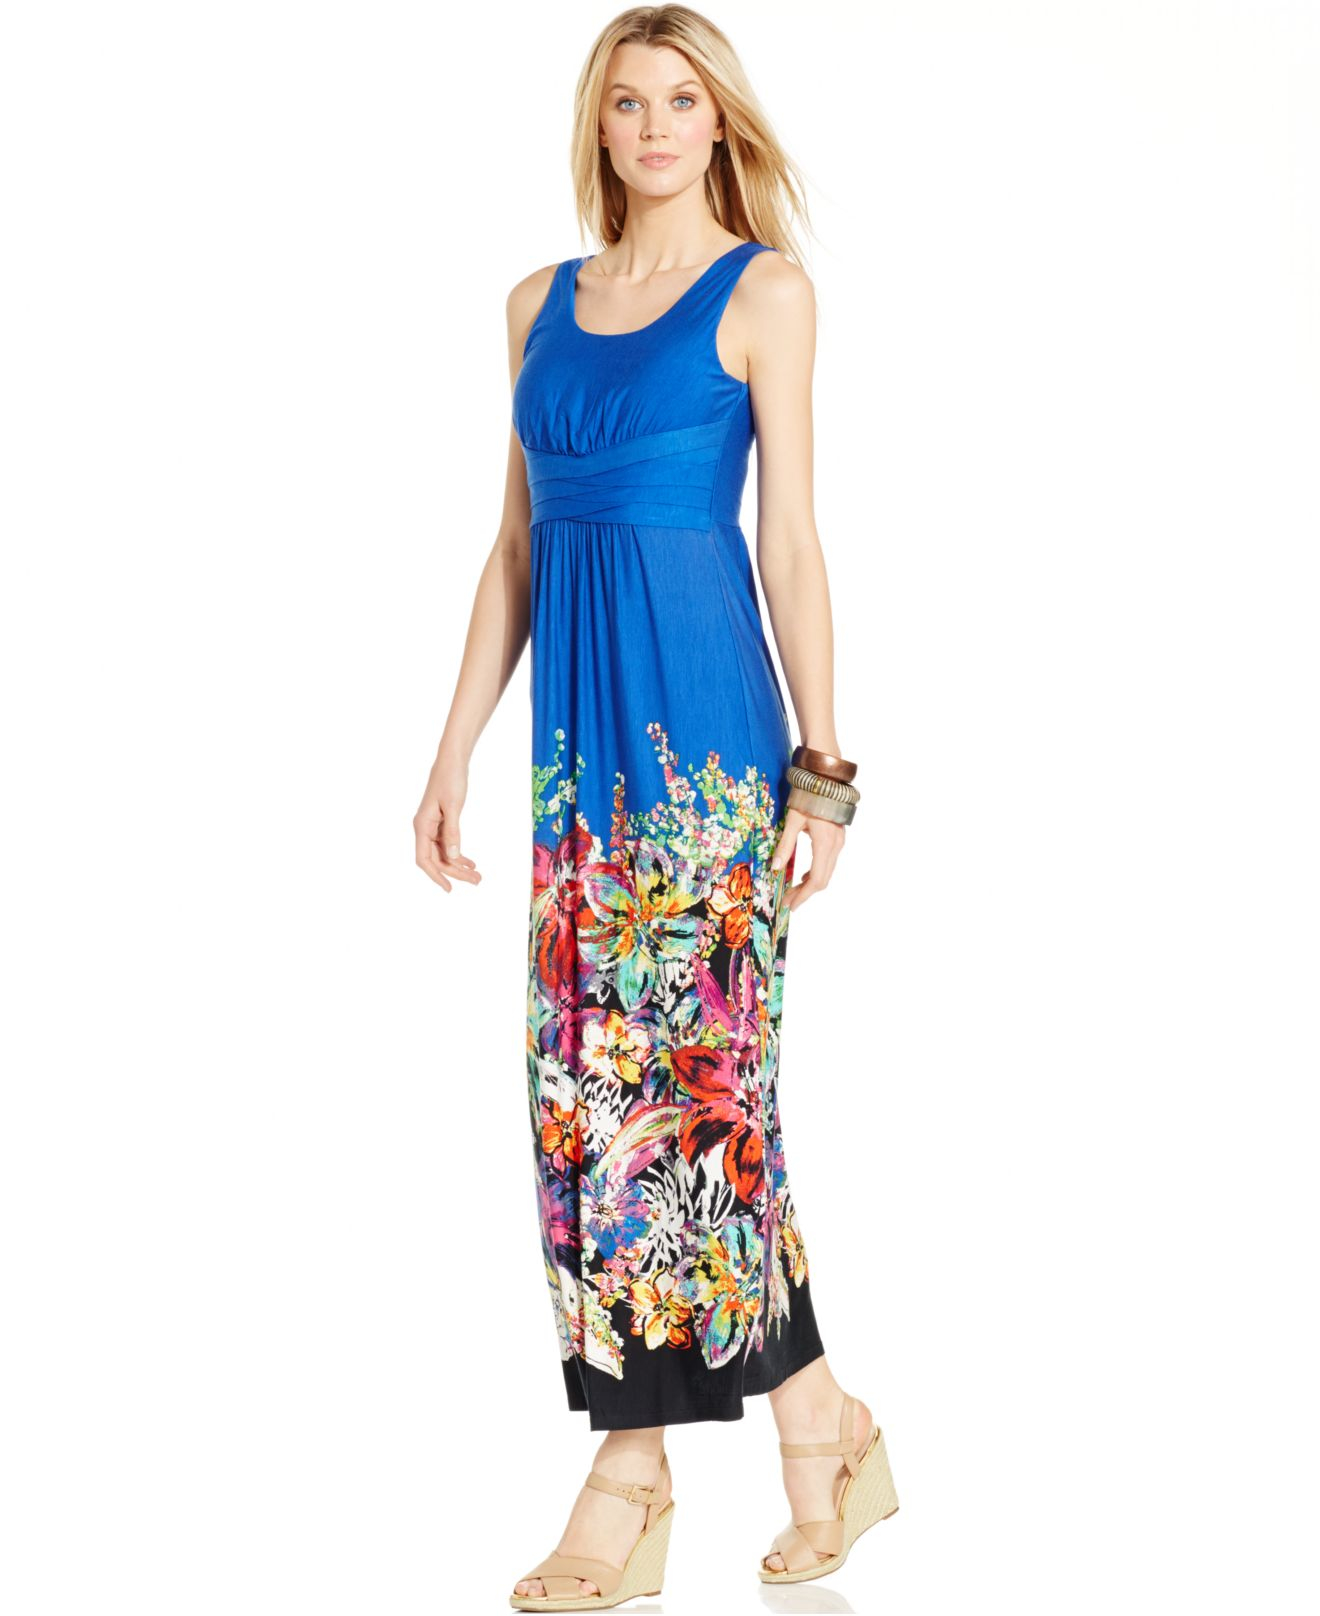 807d51b1a20 Lyst - Spense Petite Placed-floral Maxi Dress in Blue